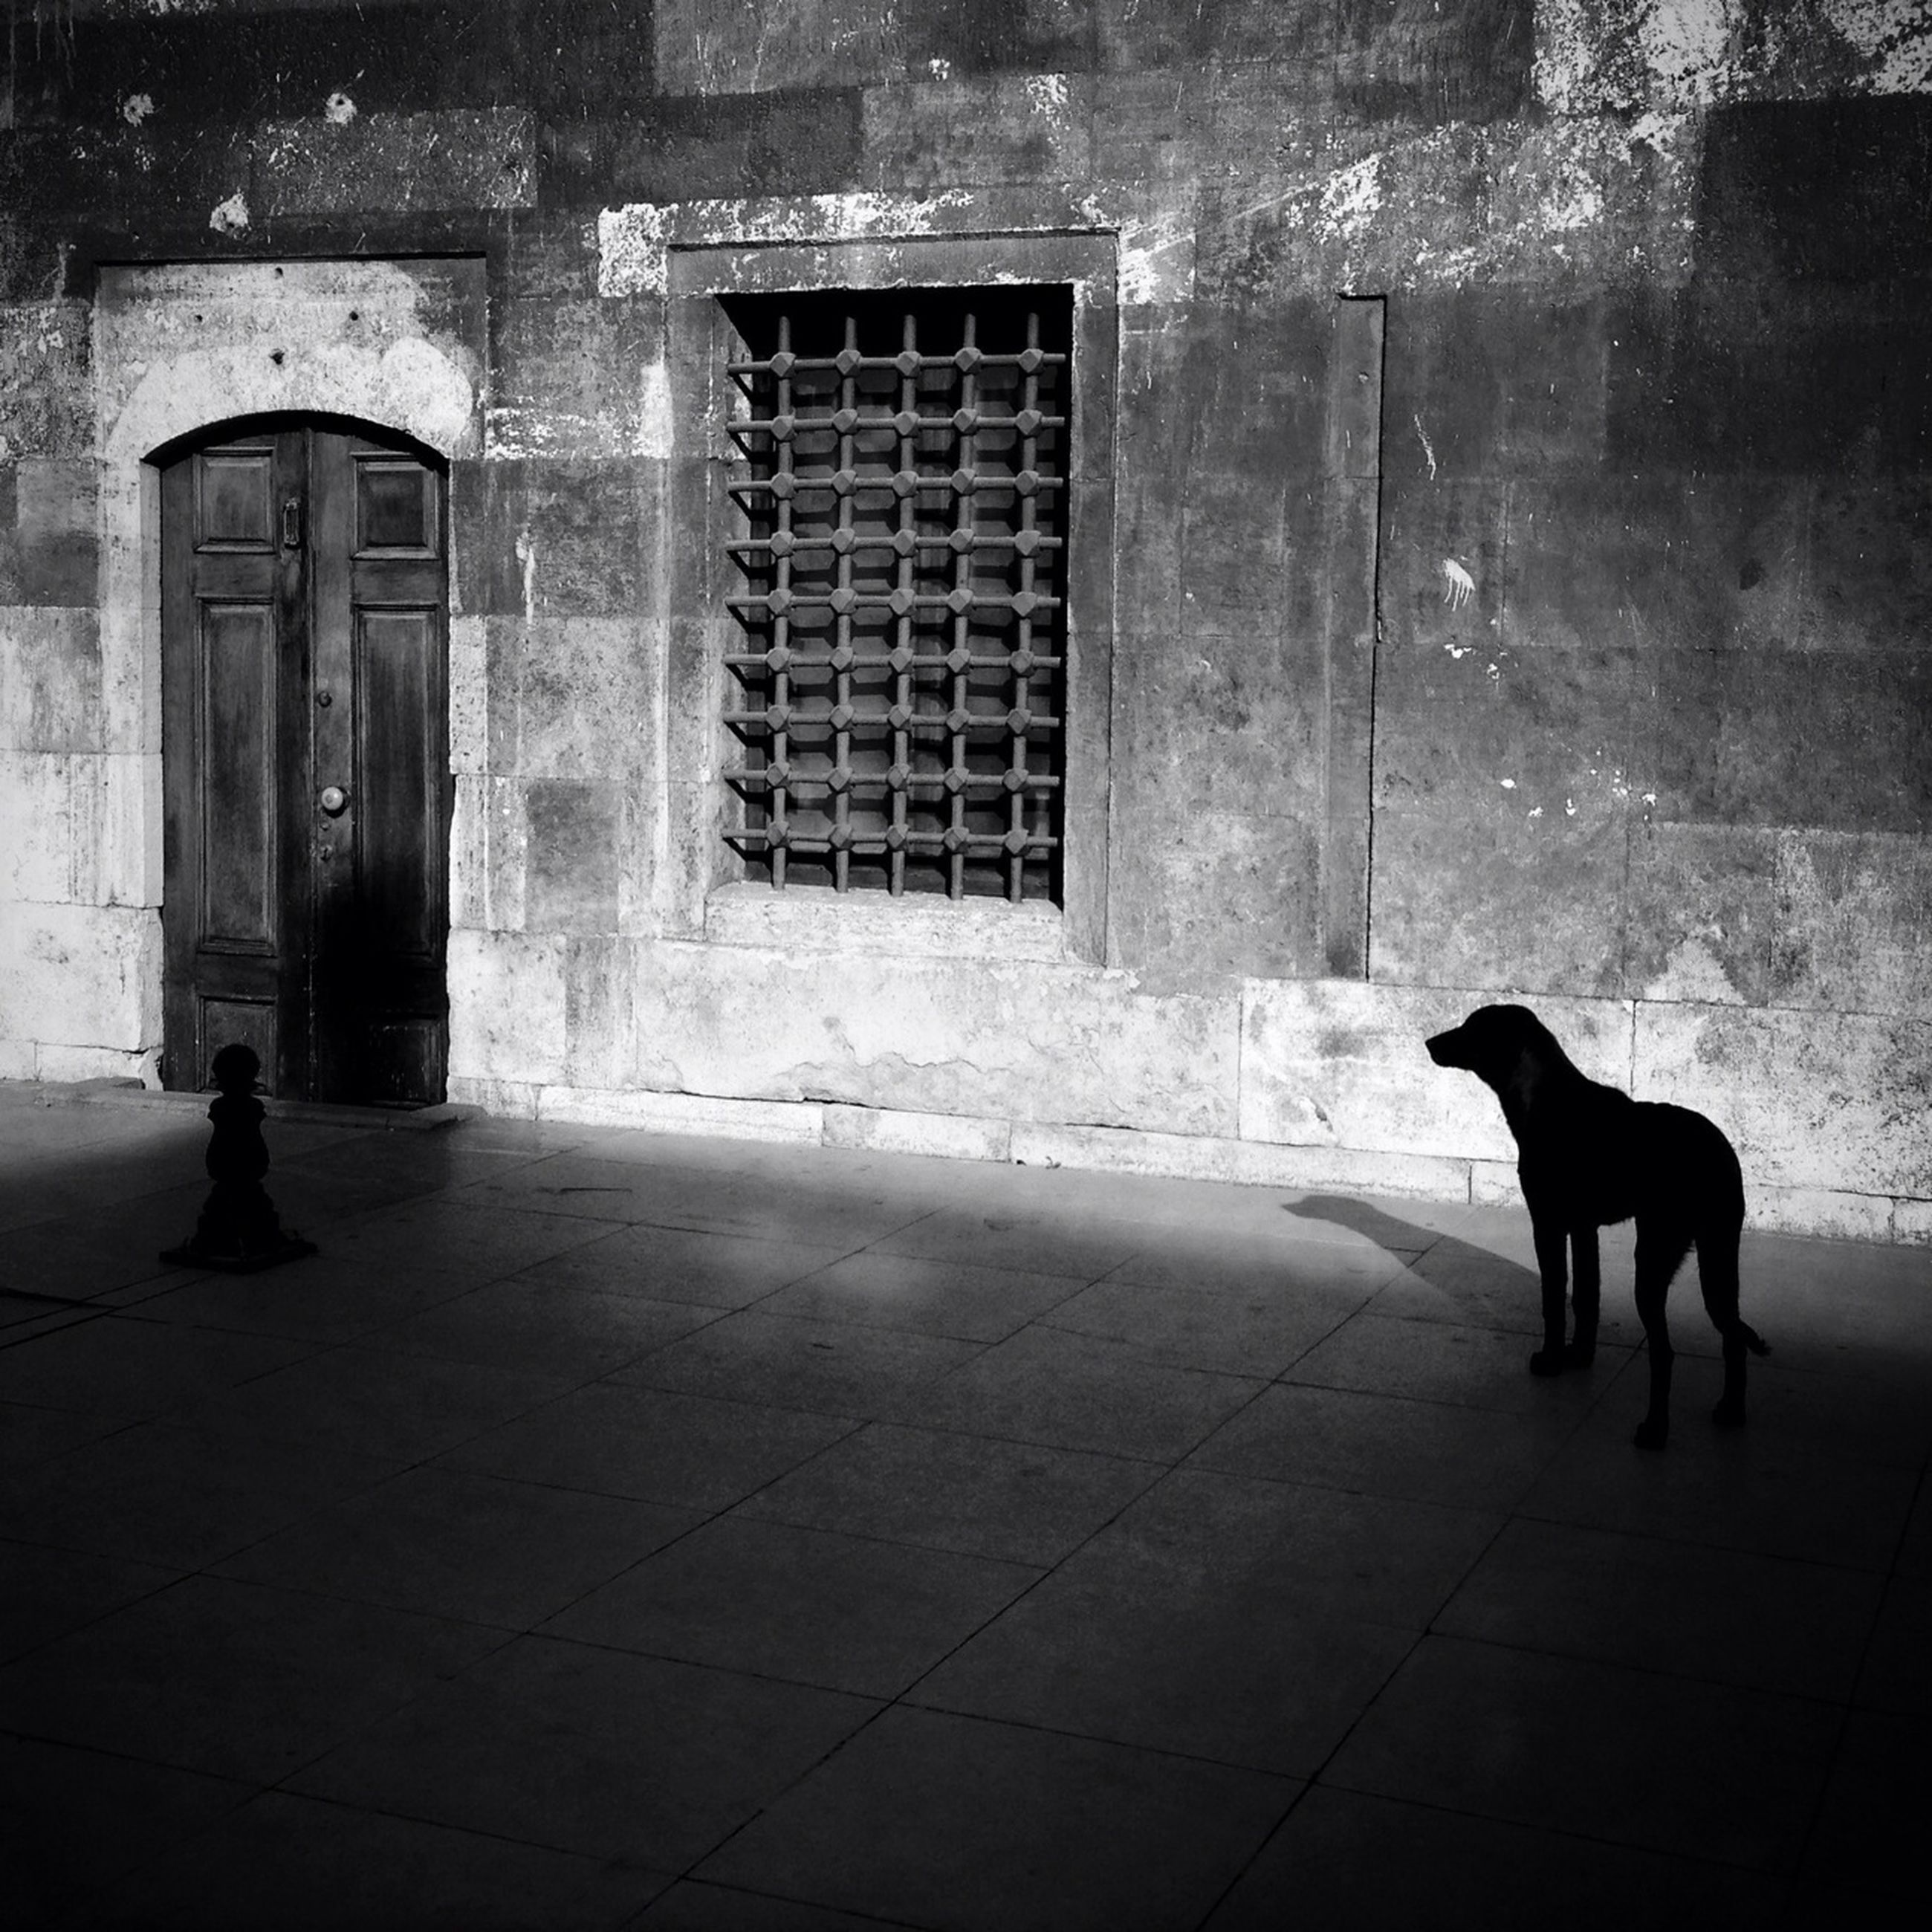 architecture, building exterior, animal themes, built structure, domestic animals, one animal, pets, mammal, house, door, full length, dog, window, street, side view, cobblestone, cat, domestic cat, wall - building feature, walking